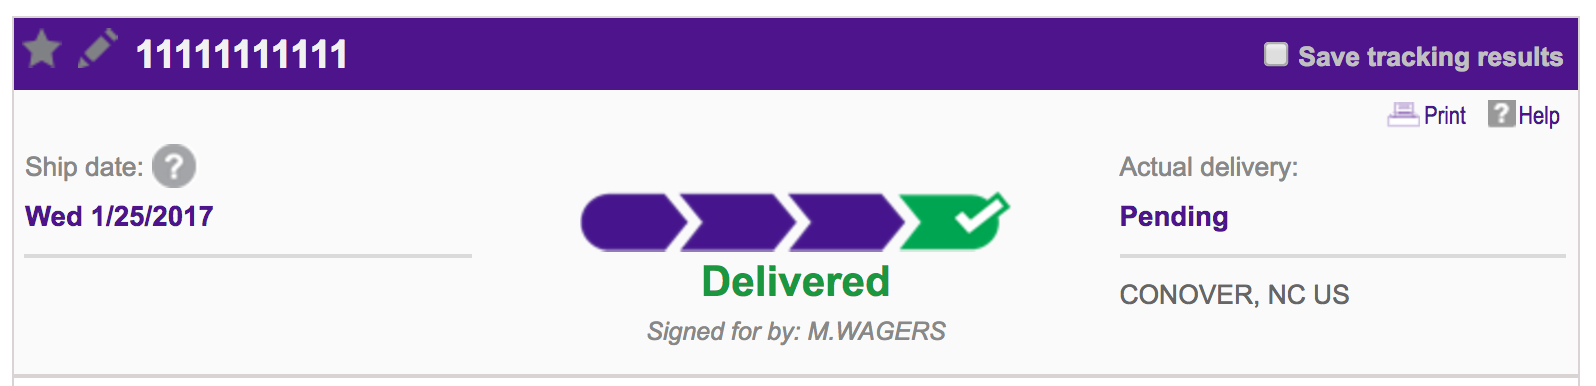 fedex tracking number - delivery info